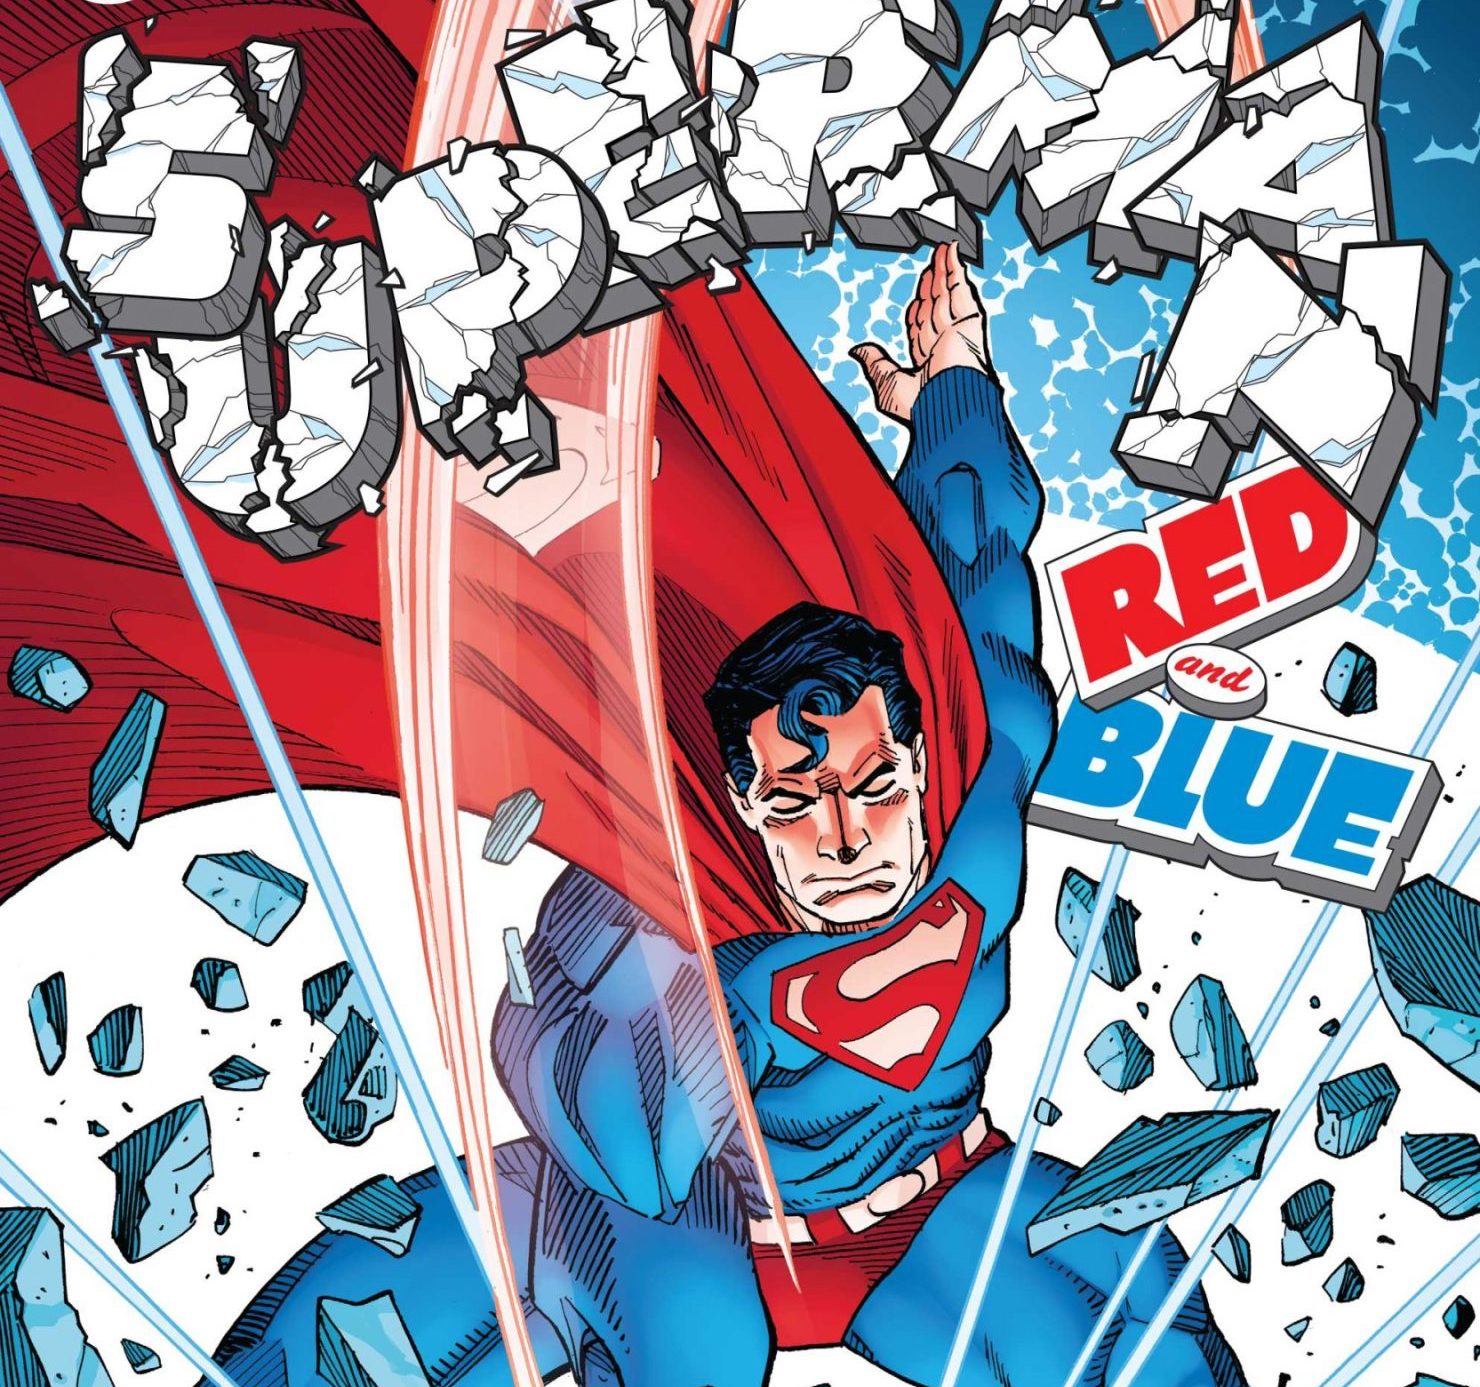 'Superman Red & Blue' #4 is an inspiring anthology issue